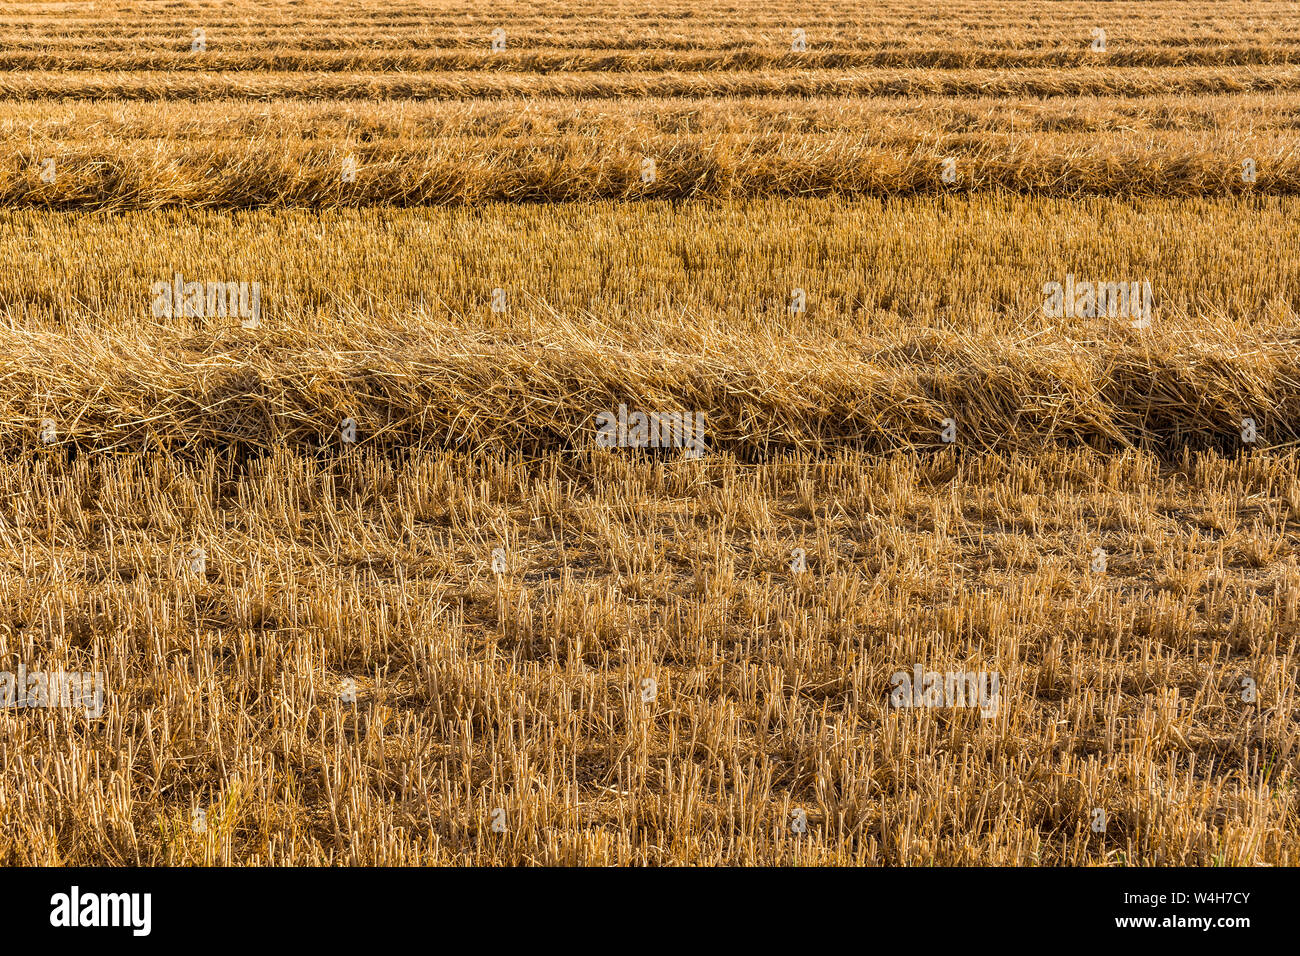 Stubble Wheat Field Texture Stock Photos Stubble Wheat